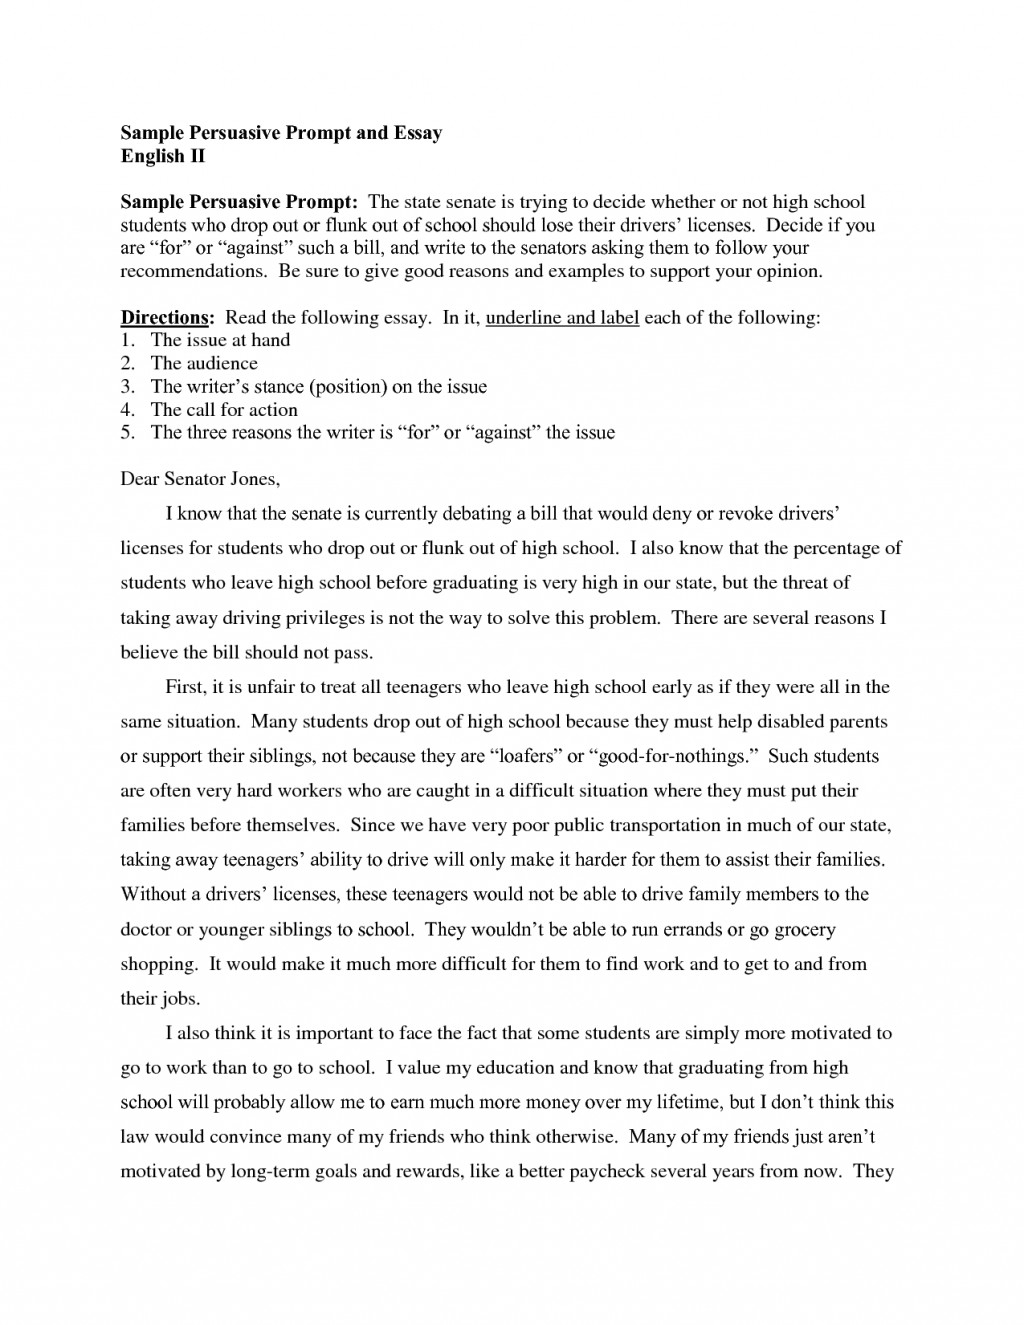 016 Education Research Paper Topic Suggestions Persuasive Essay Topics For High School Sample Ideas Highschool Students Good Prompt Funny Easy Fun List Of Seniors Writing English Wondrous Large